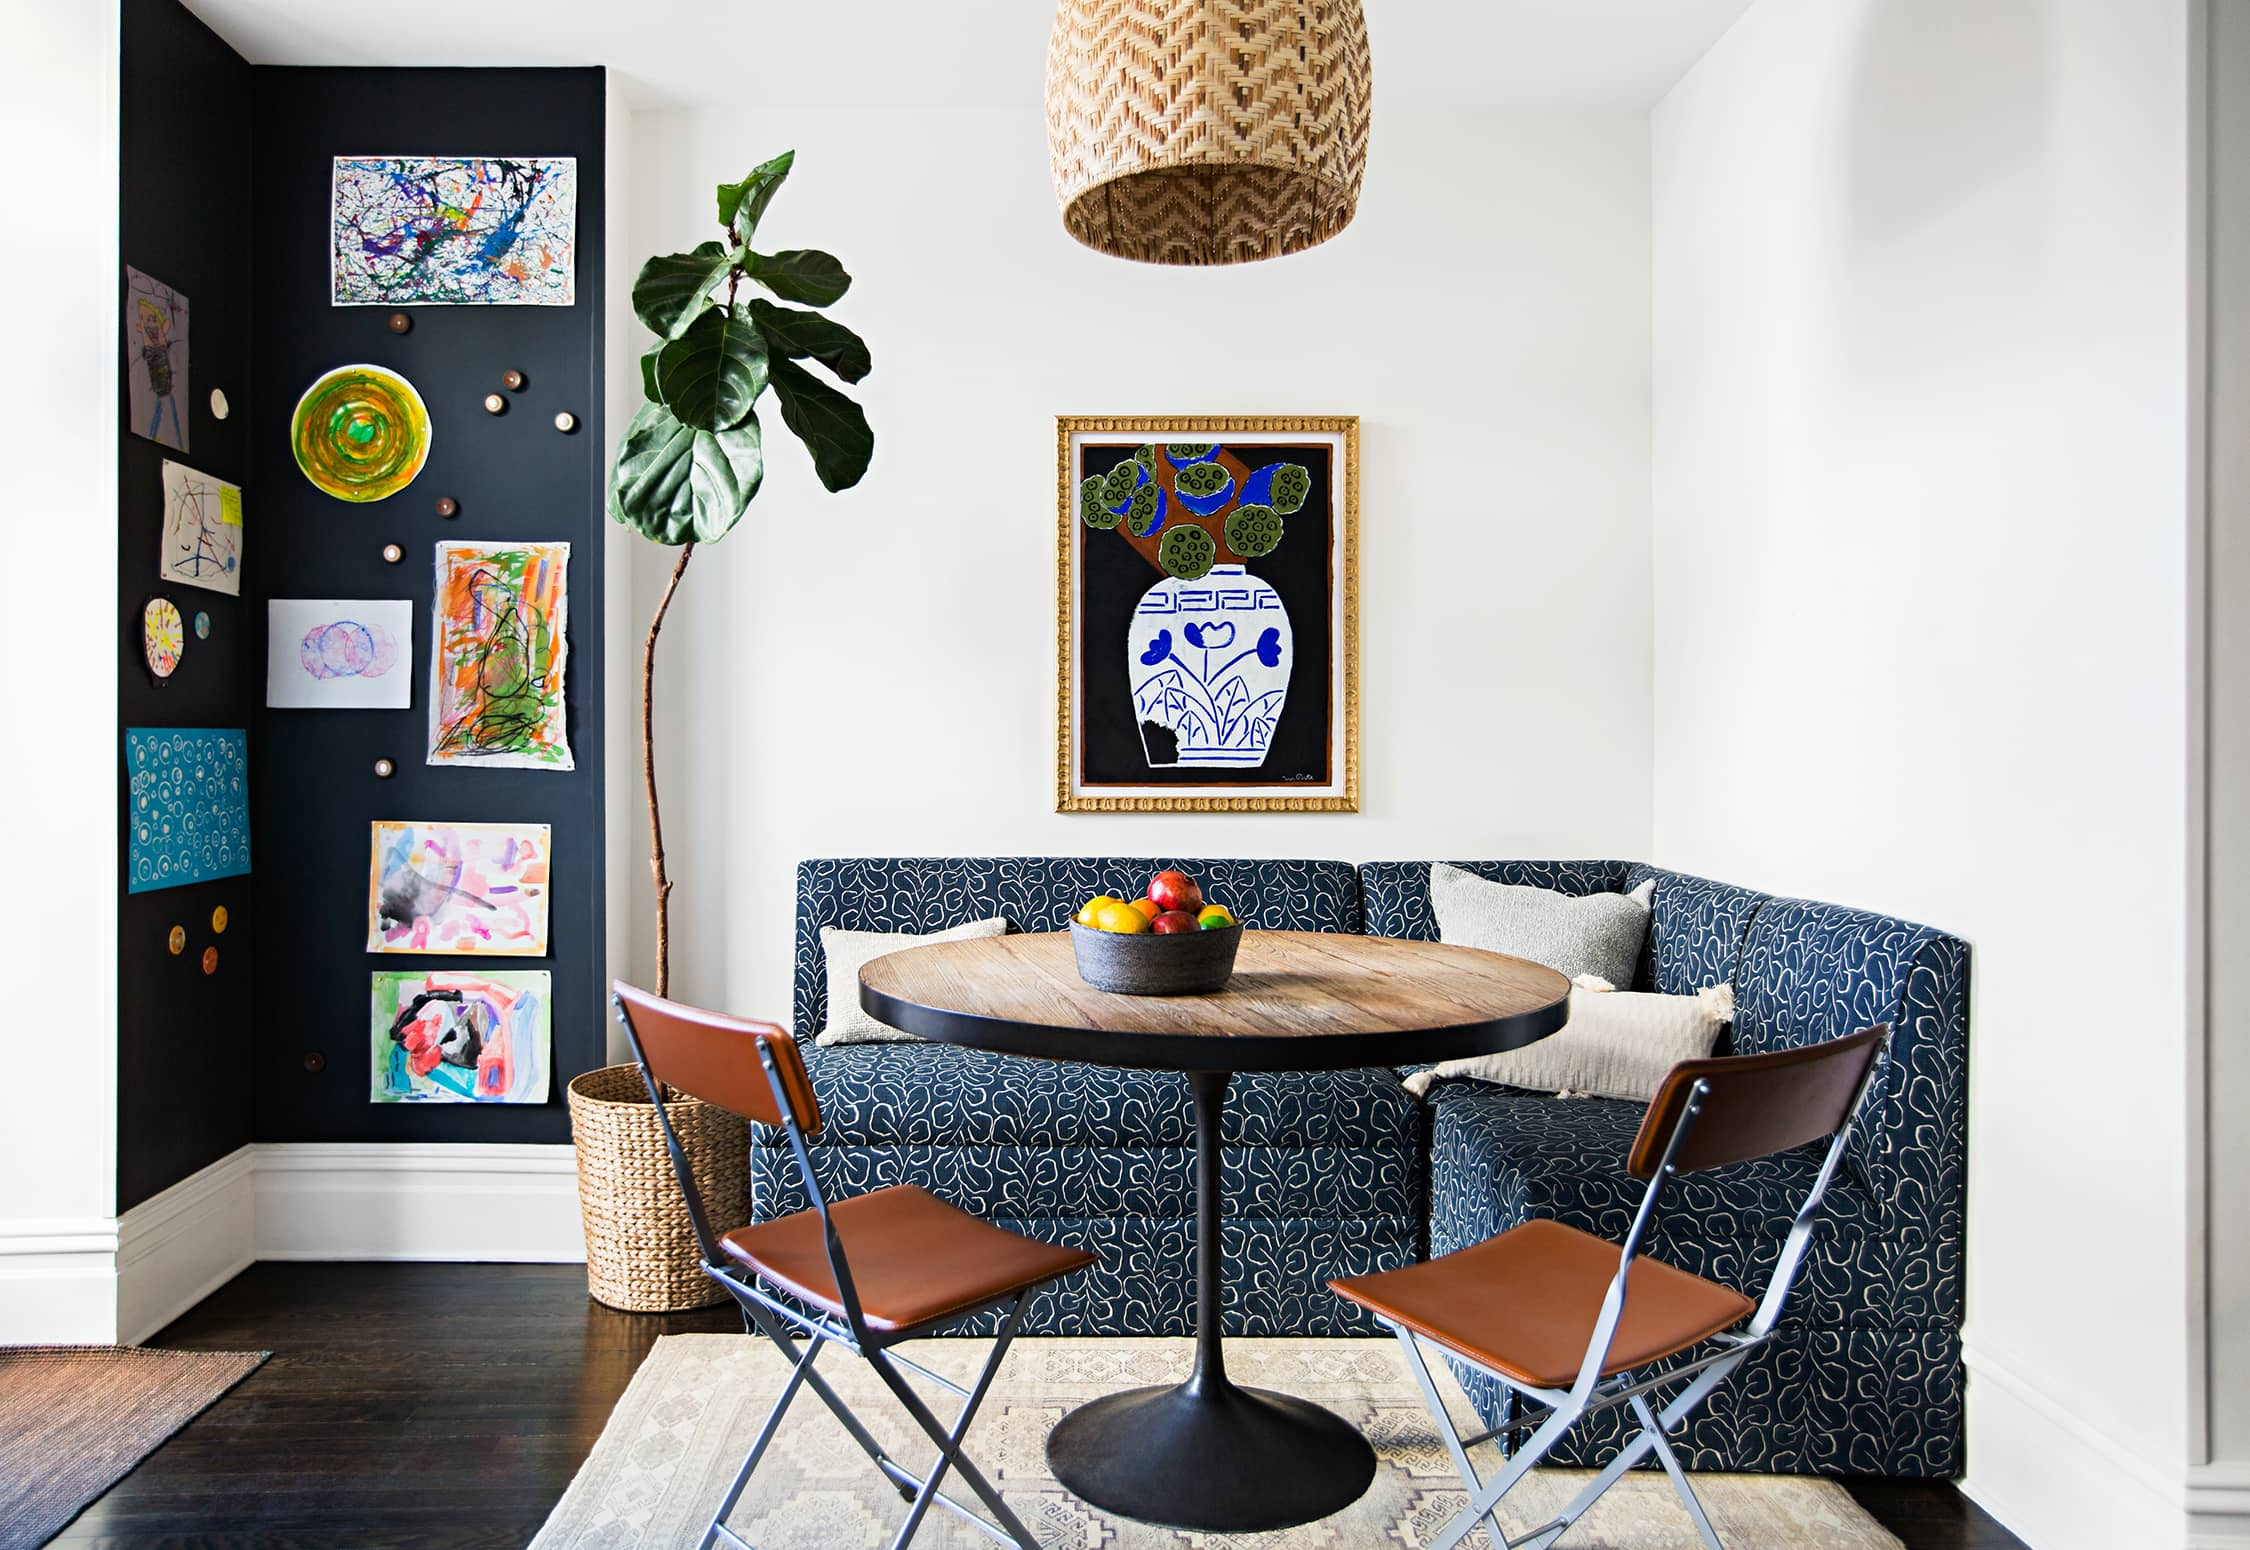 The Wallpaper-Covered Brooklyn Home of Studio Four NYC's Founder Kate Reynolds